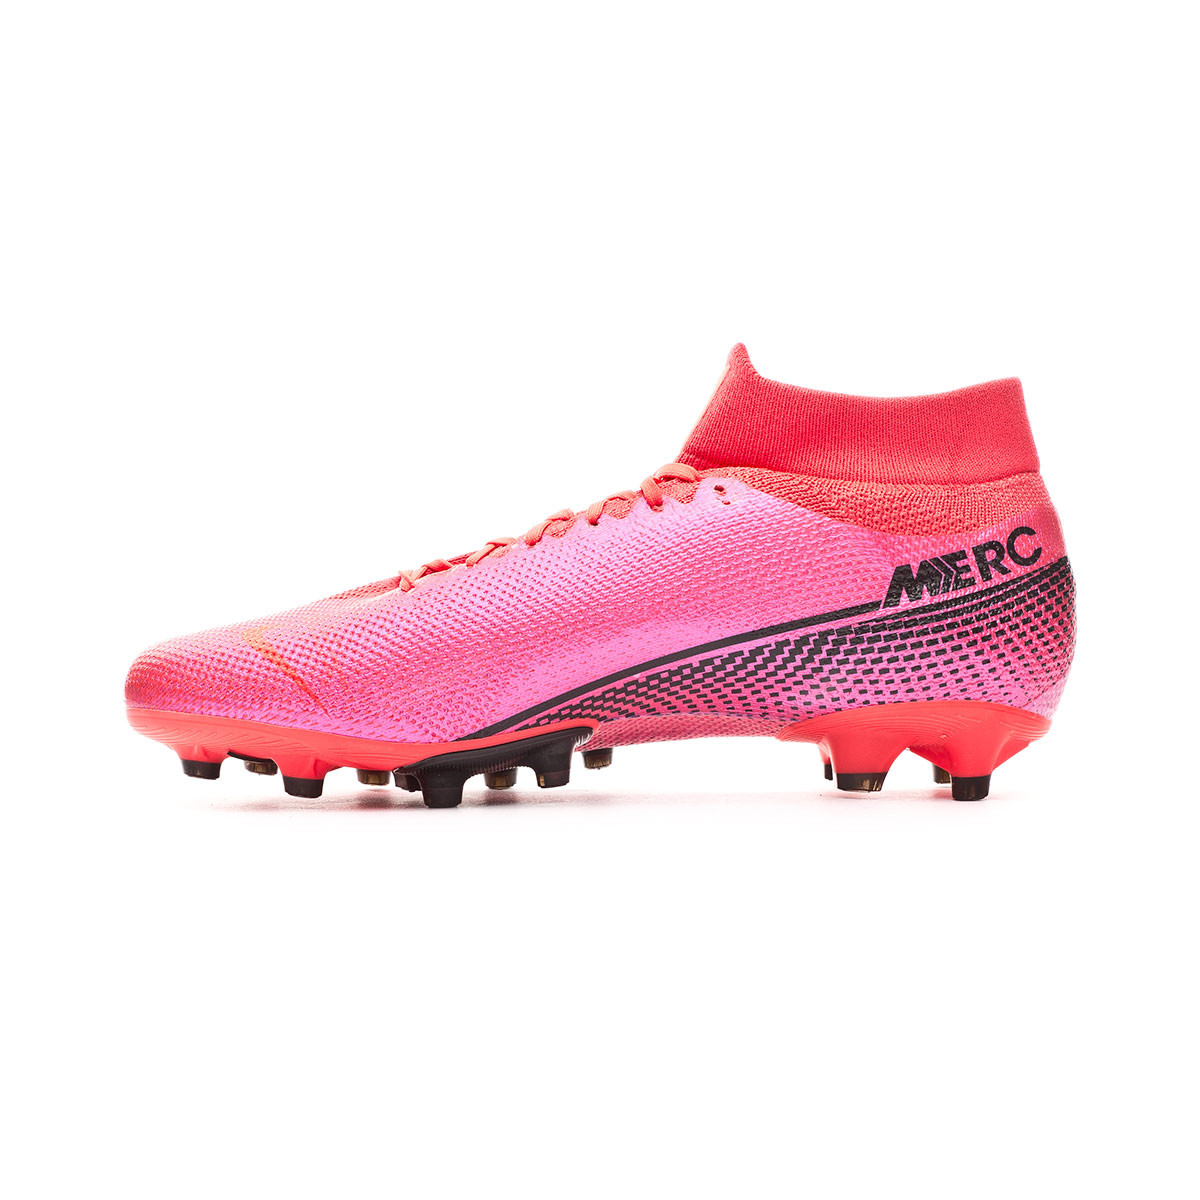 global Oportuno caricia  Football Boots Nike Mercurial Superfly VII Pro AG-PRO Laser crimson-Black -  Football store Fútbol Emotion